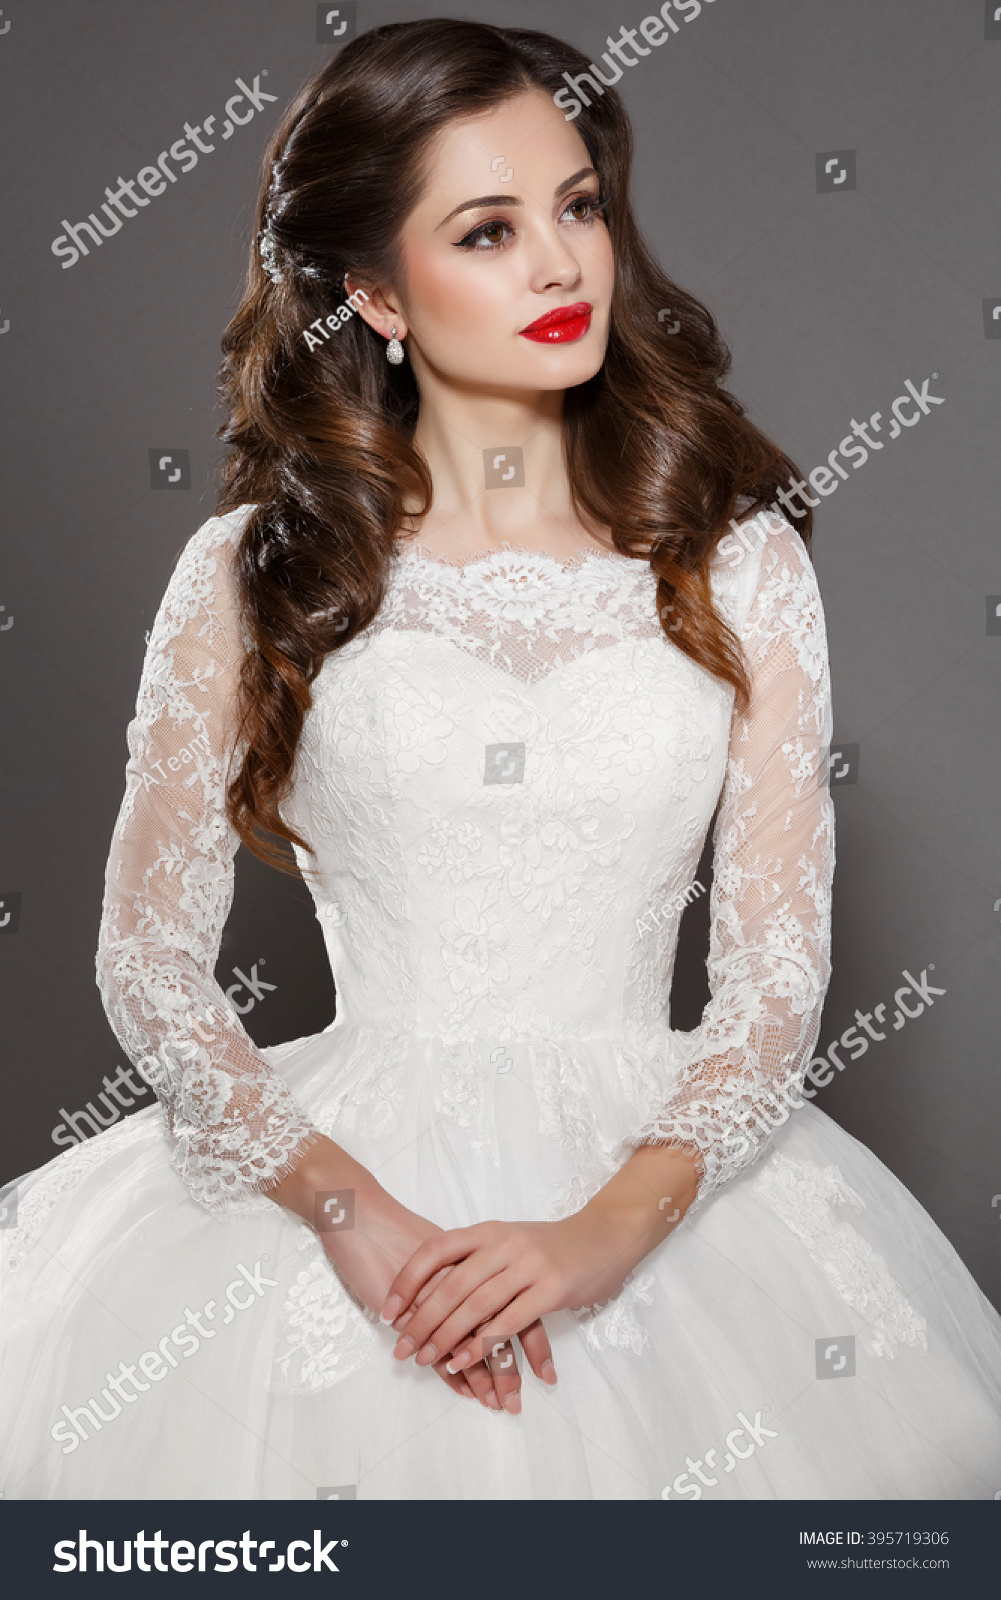 Beautiful Bride Portrait Wedding Makeup Woman Stock Photo (Royalty ...